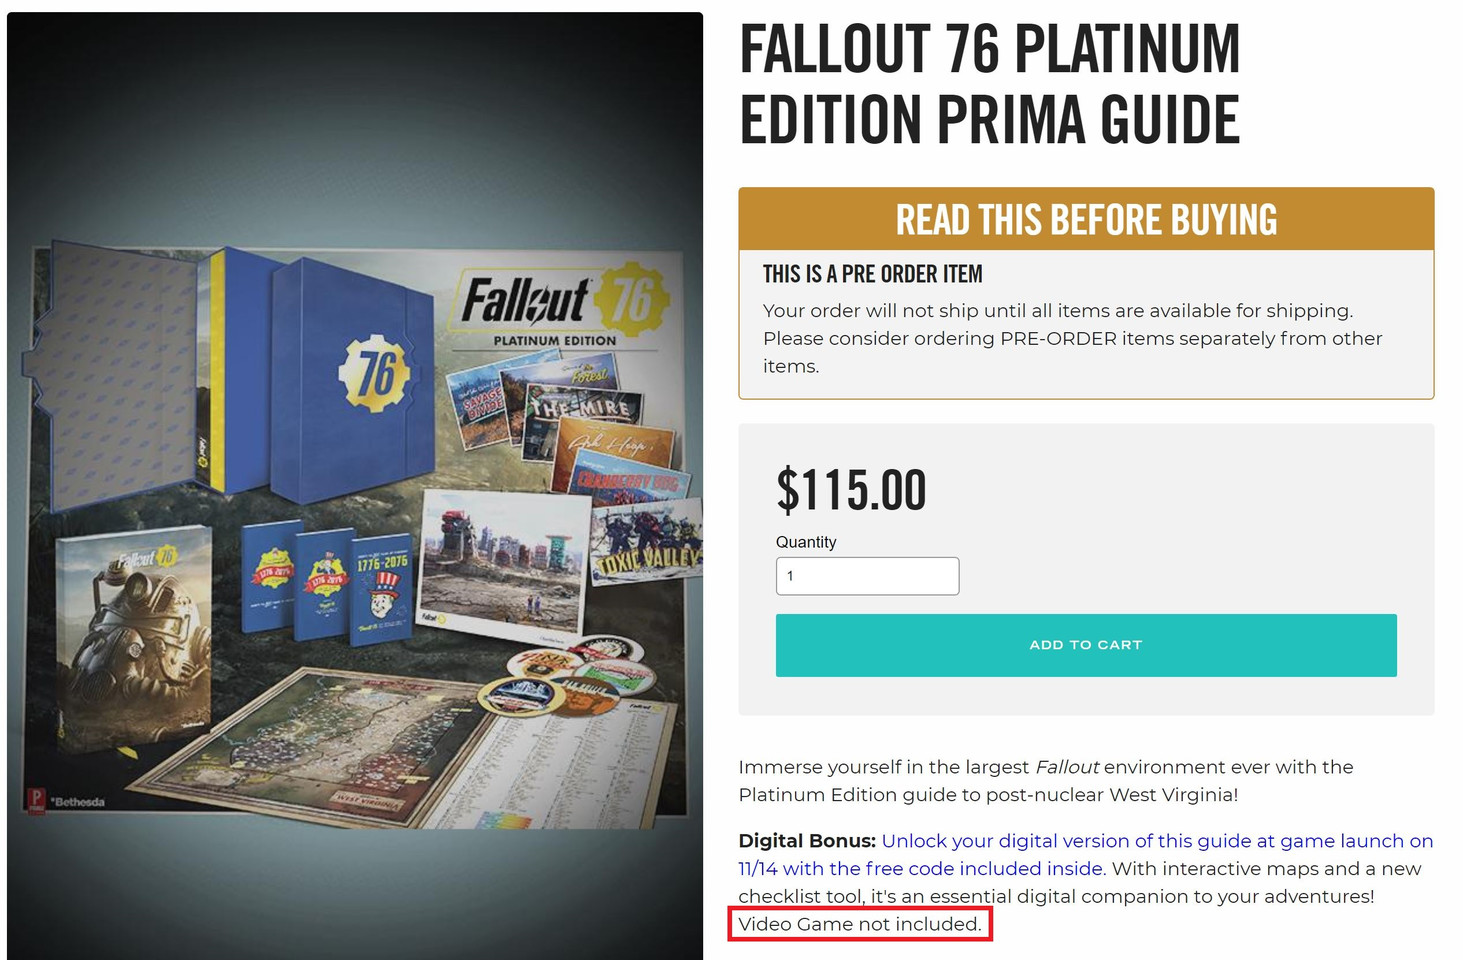 Fallout 76 Platinum Edition Costs $115, Doesn't Include the